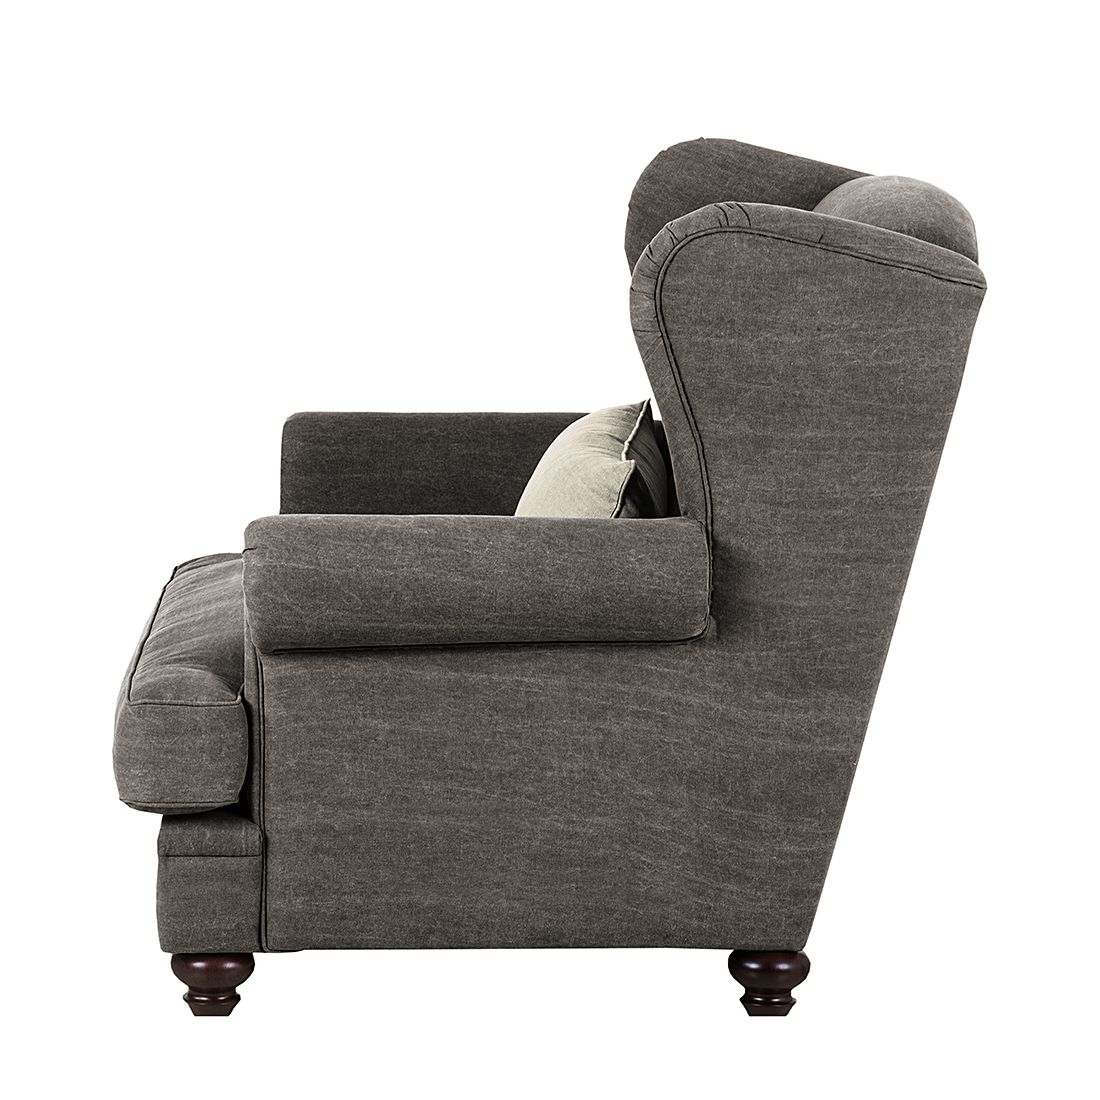 fauteuil oreille fauteuil oreilles louis xv marron villa grandfather fauteuil oreilles design. Black Bedroom Furniture Sets. Home Design Ideas